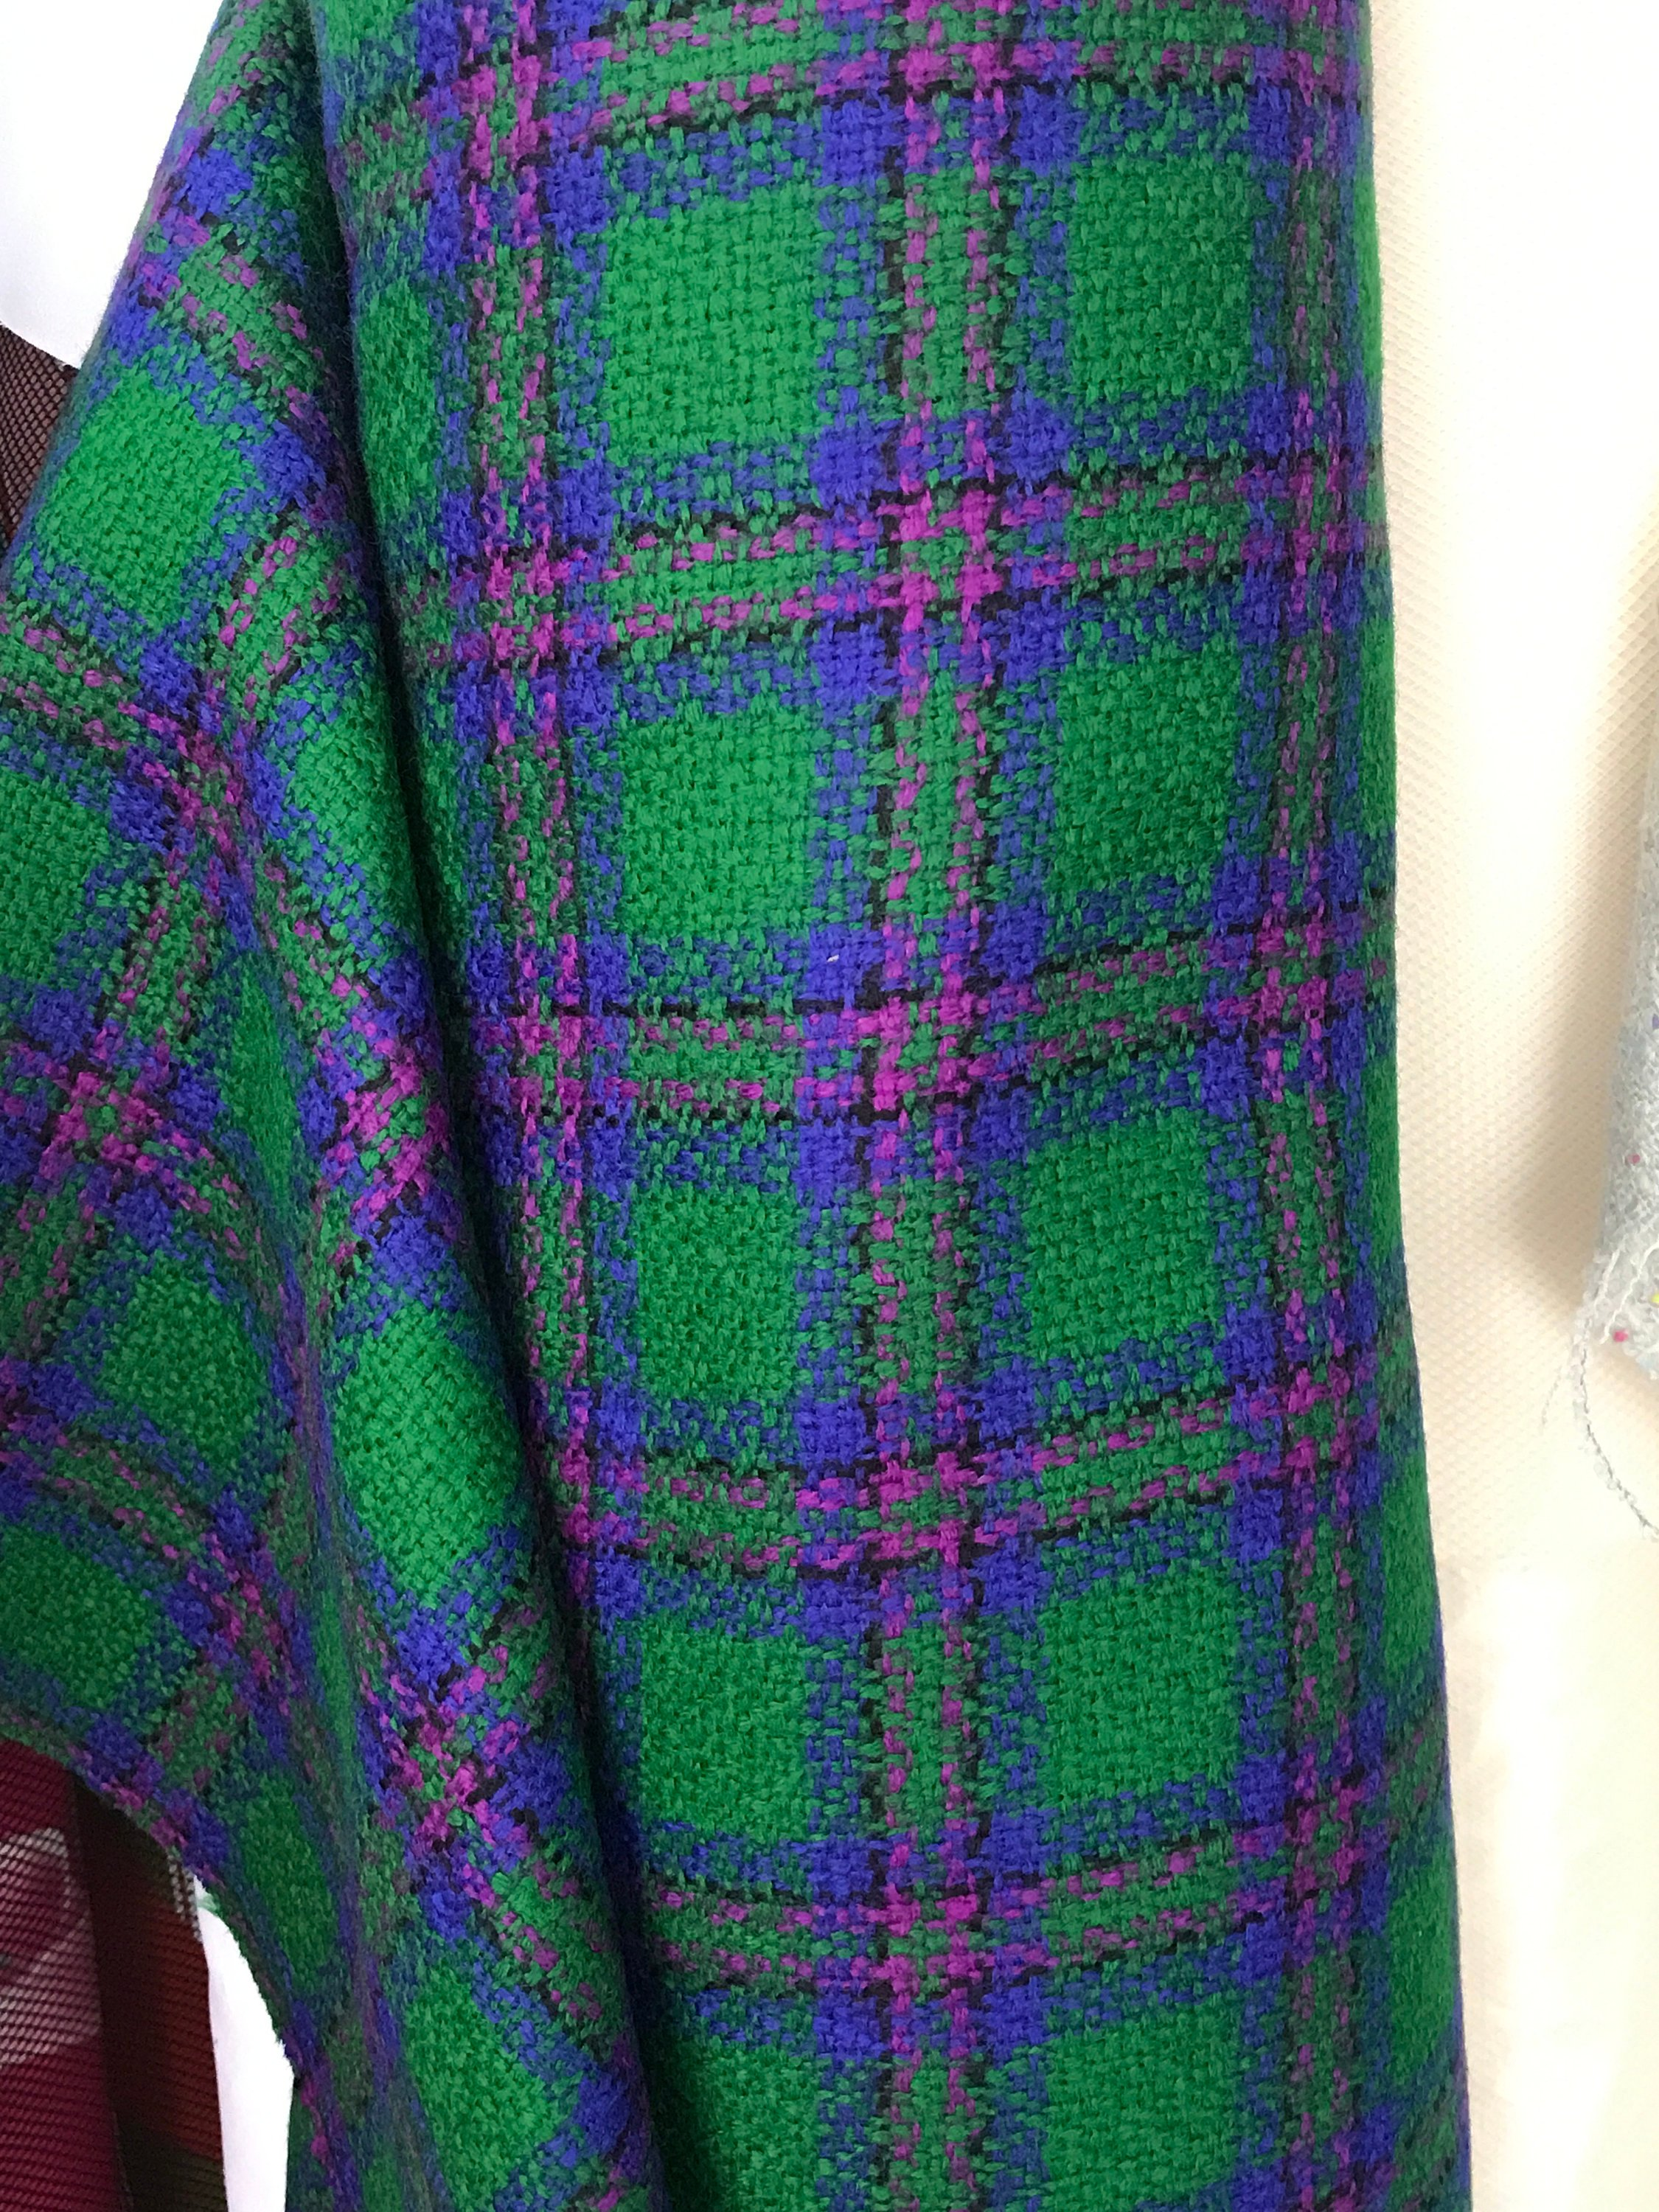 Green blue boucle check tartan fabric textured fancy wool fabric large check plaid pure wool high end suiting made in France 150cm wide